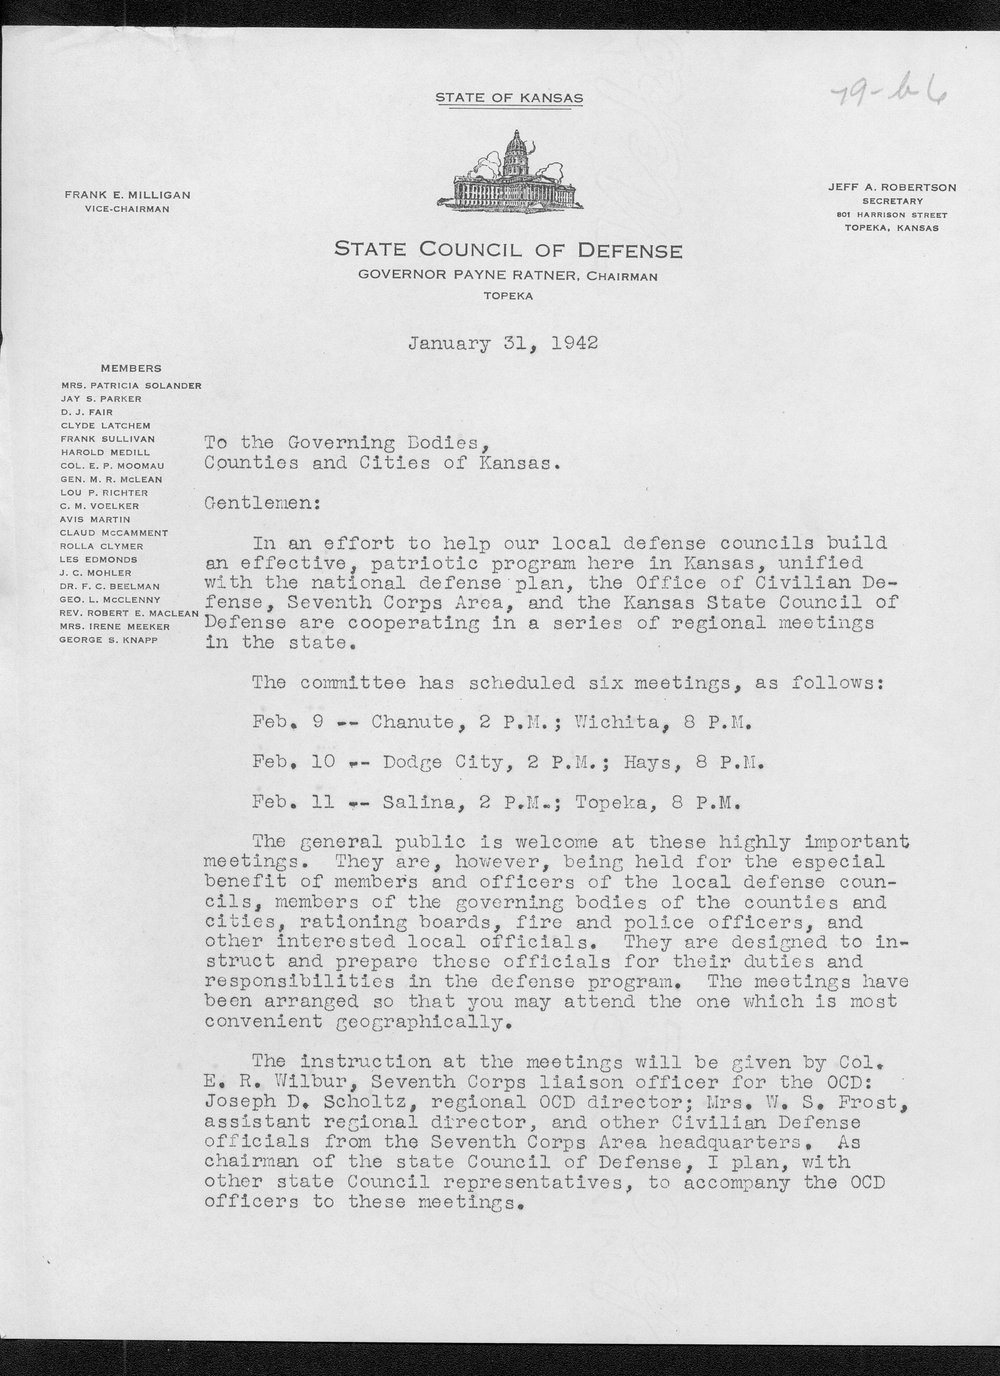 Governor Payne Ratner to the governing bodies of the counties and cities of Kansas - 1